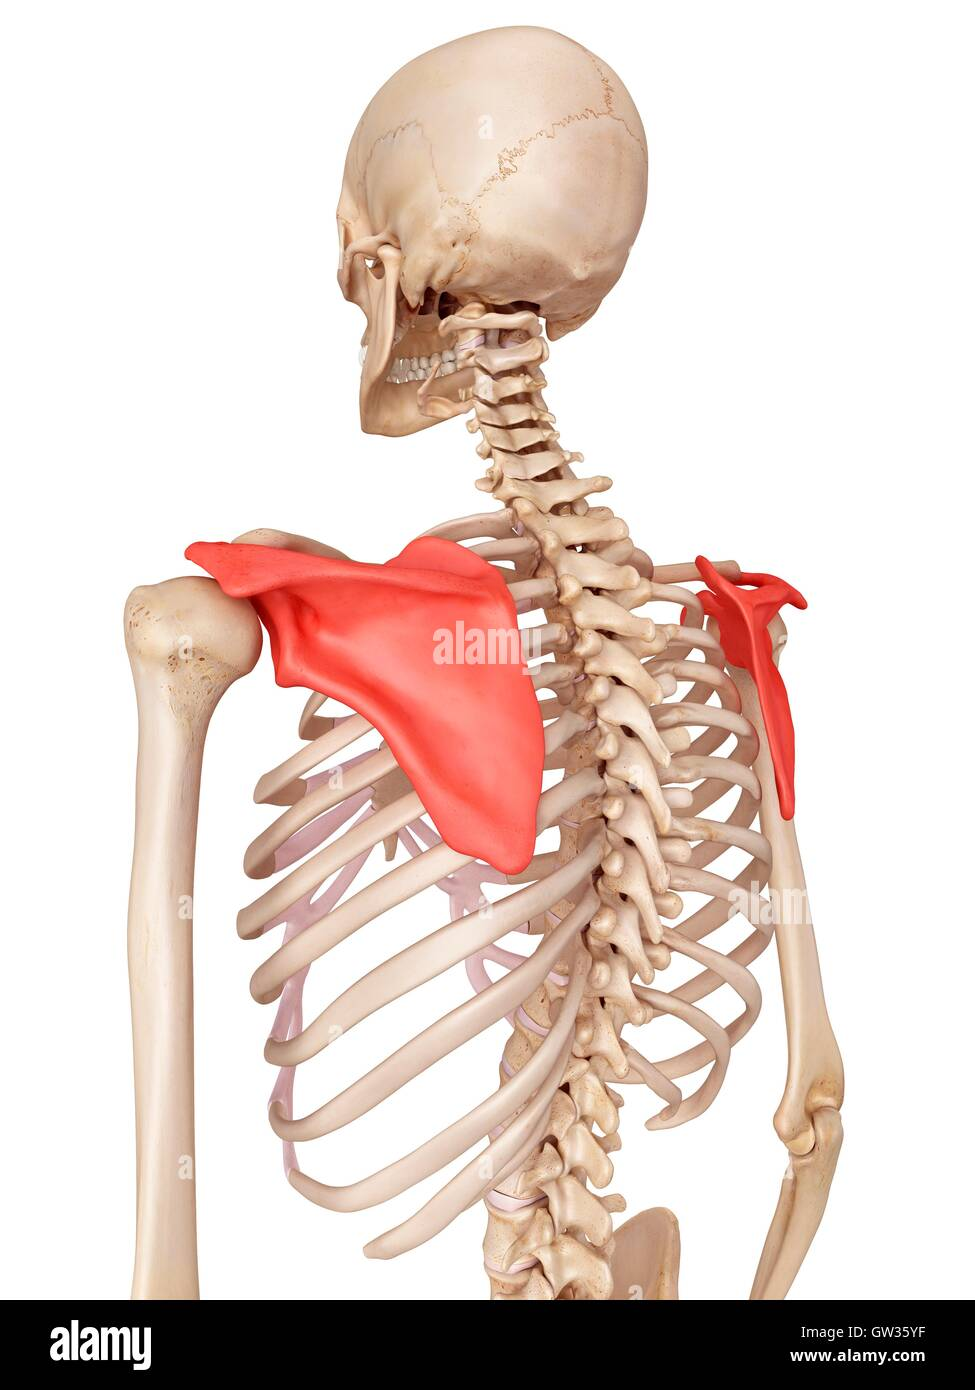 Human shoulder blade, illustration Stock Photo: 118699155 - Alamy